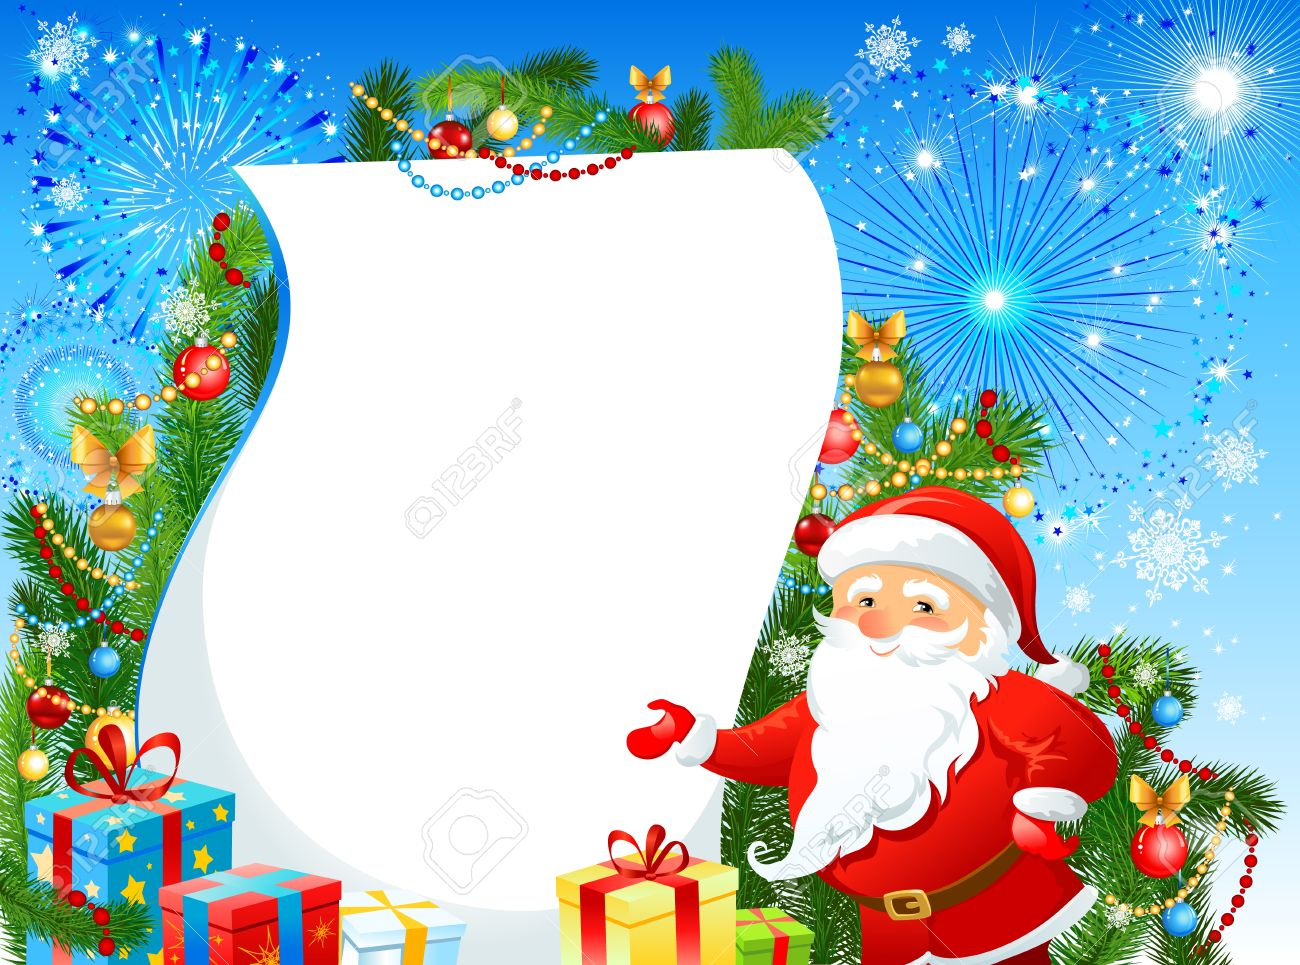 festive christmas background with santa claus and fir tree space royalty free cliparts vectors and stock illustration image 11654899 festive christmas background with santa claus and fir tree space